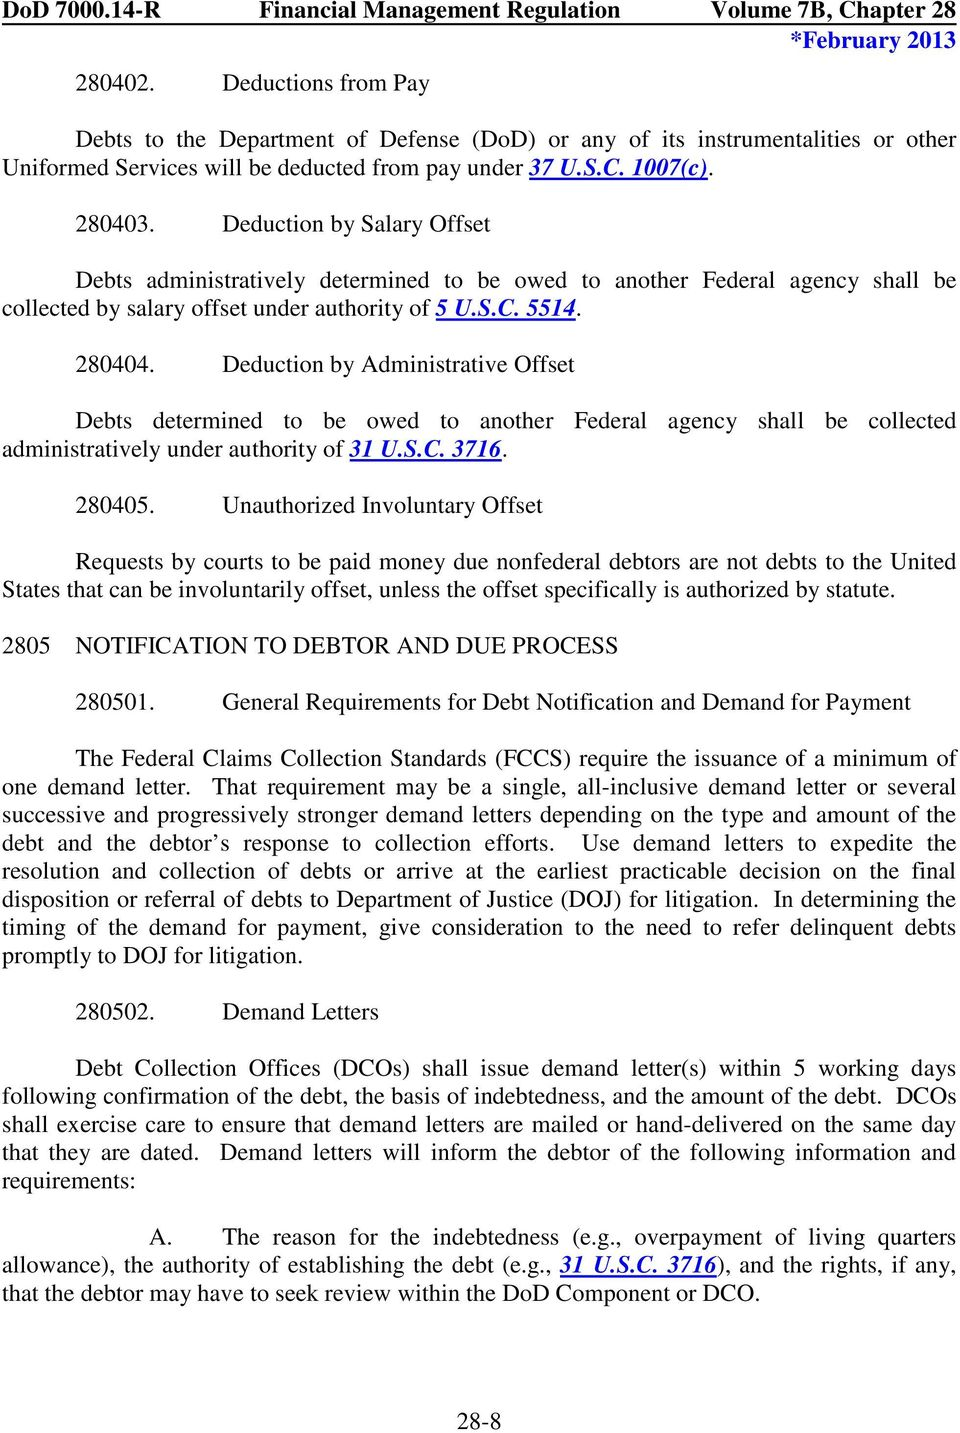 Deduction by Administrative Offset Debts determined to be owed to another Federal agency shall be collected administratively under authority of 31 U.S.C. 3716. 280405.